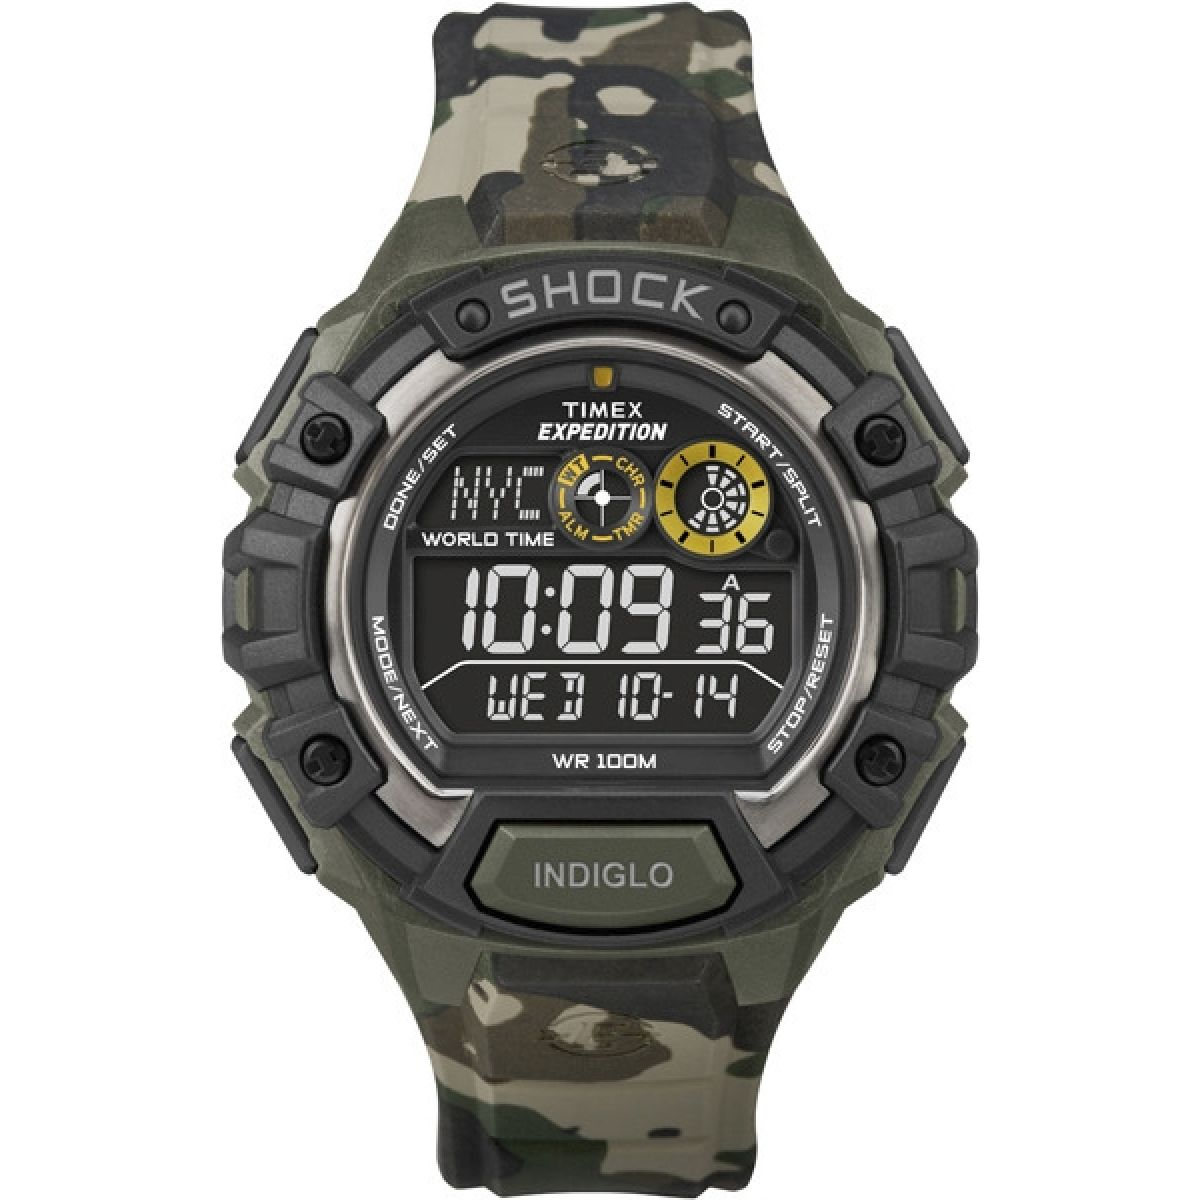 gents timex expedition alarm chronograph watch t49971 watchshop com rh watchshop com Camo Timex Expedition Indiglo Watch timex expedition digital compass watch instructions